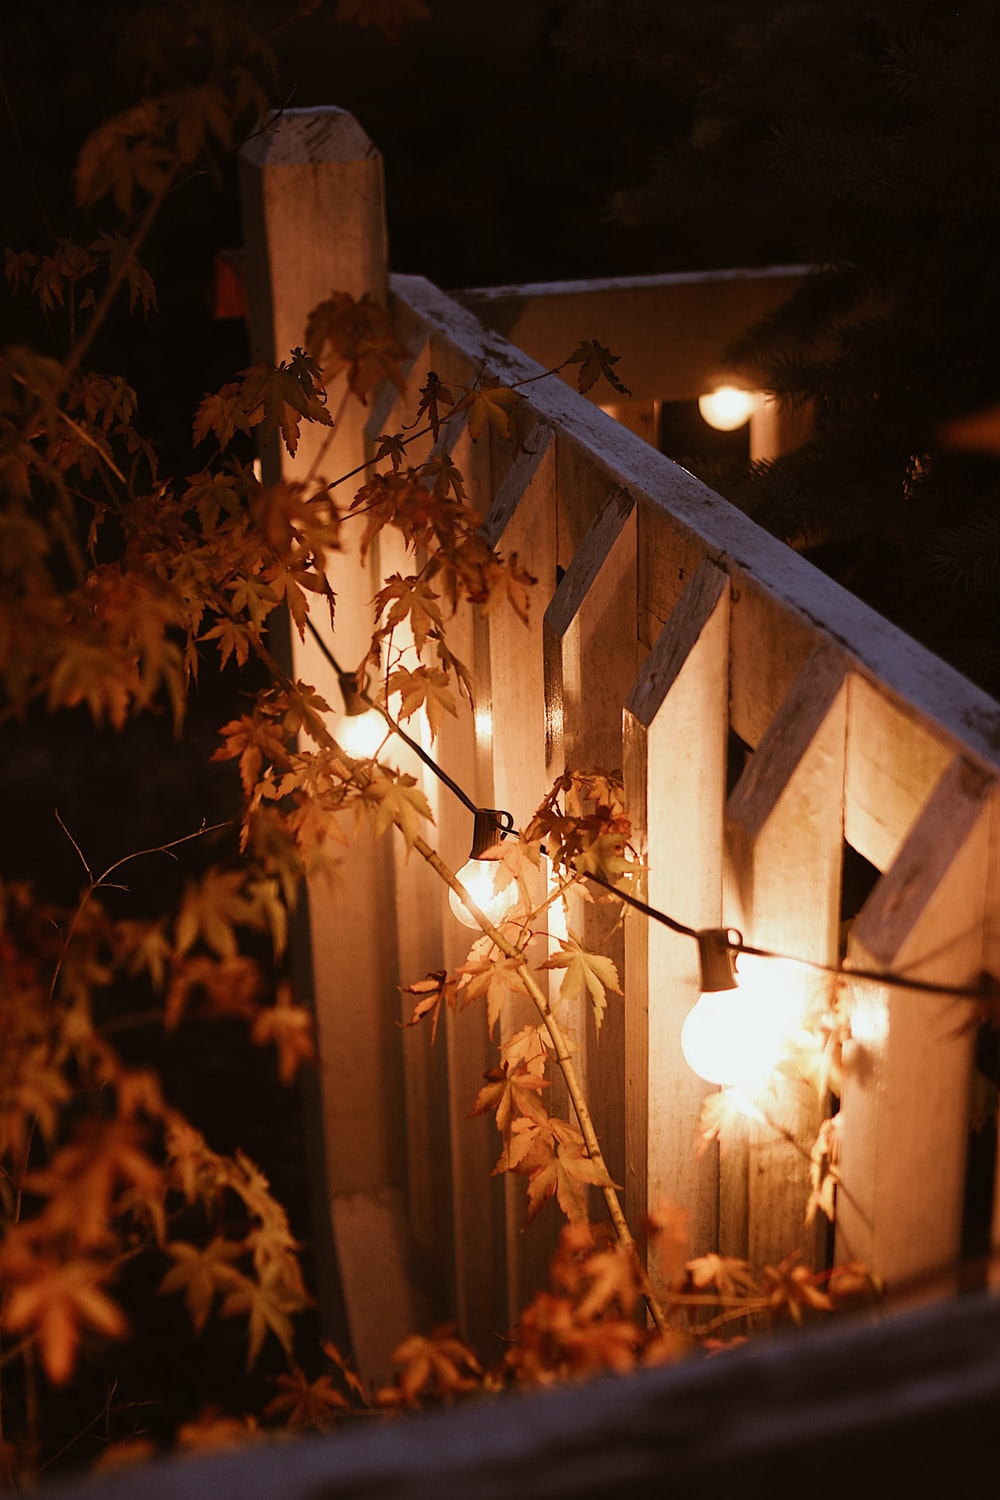 brown leaves on brown wooden fence during night time